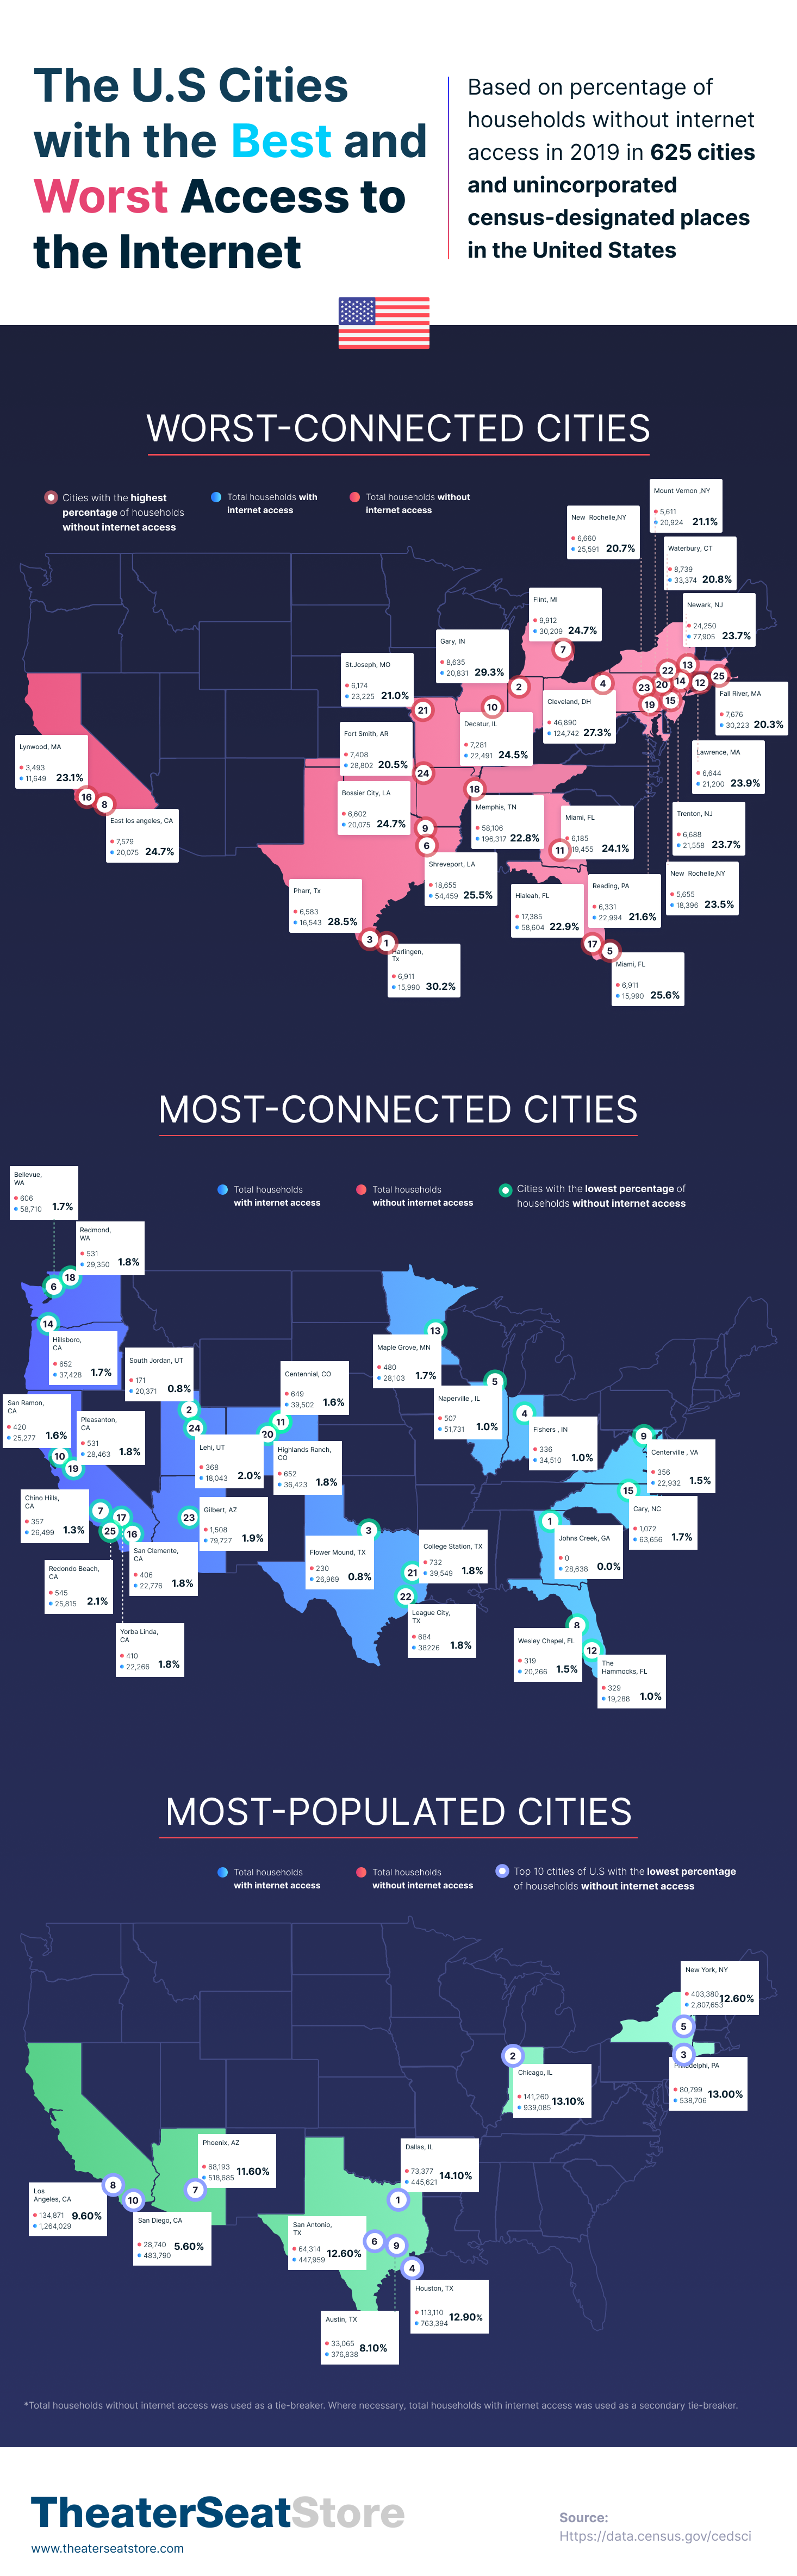 Which Cities Have the Worst Access to the Internet in the U.S.?